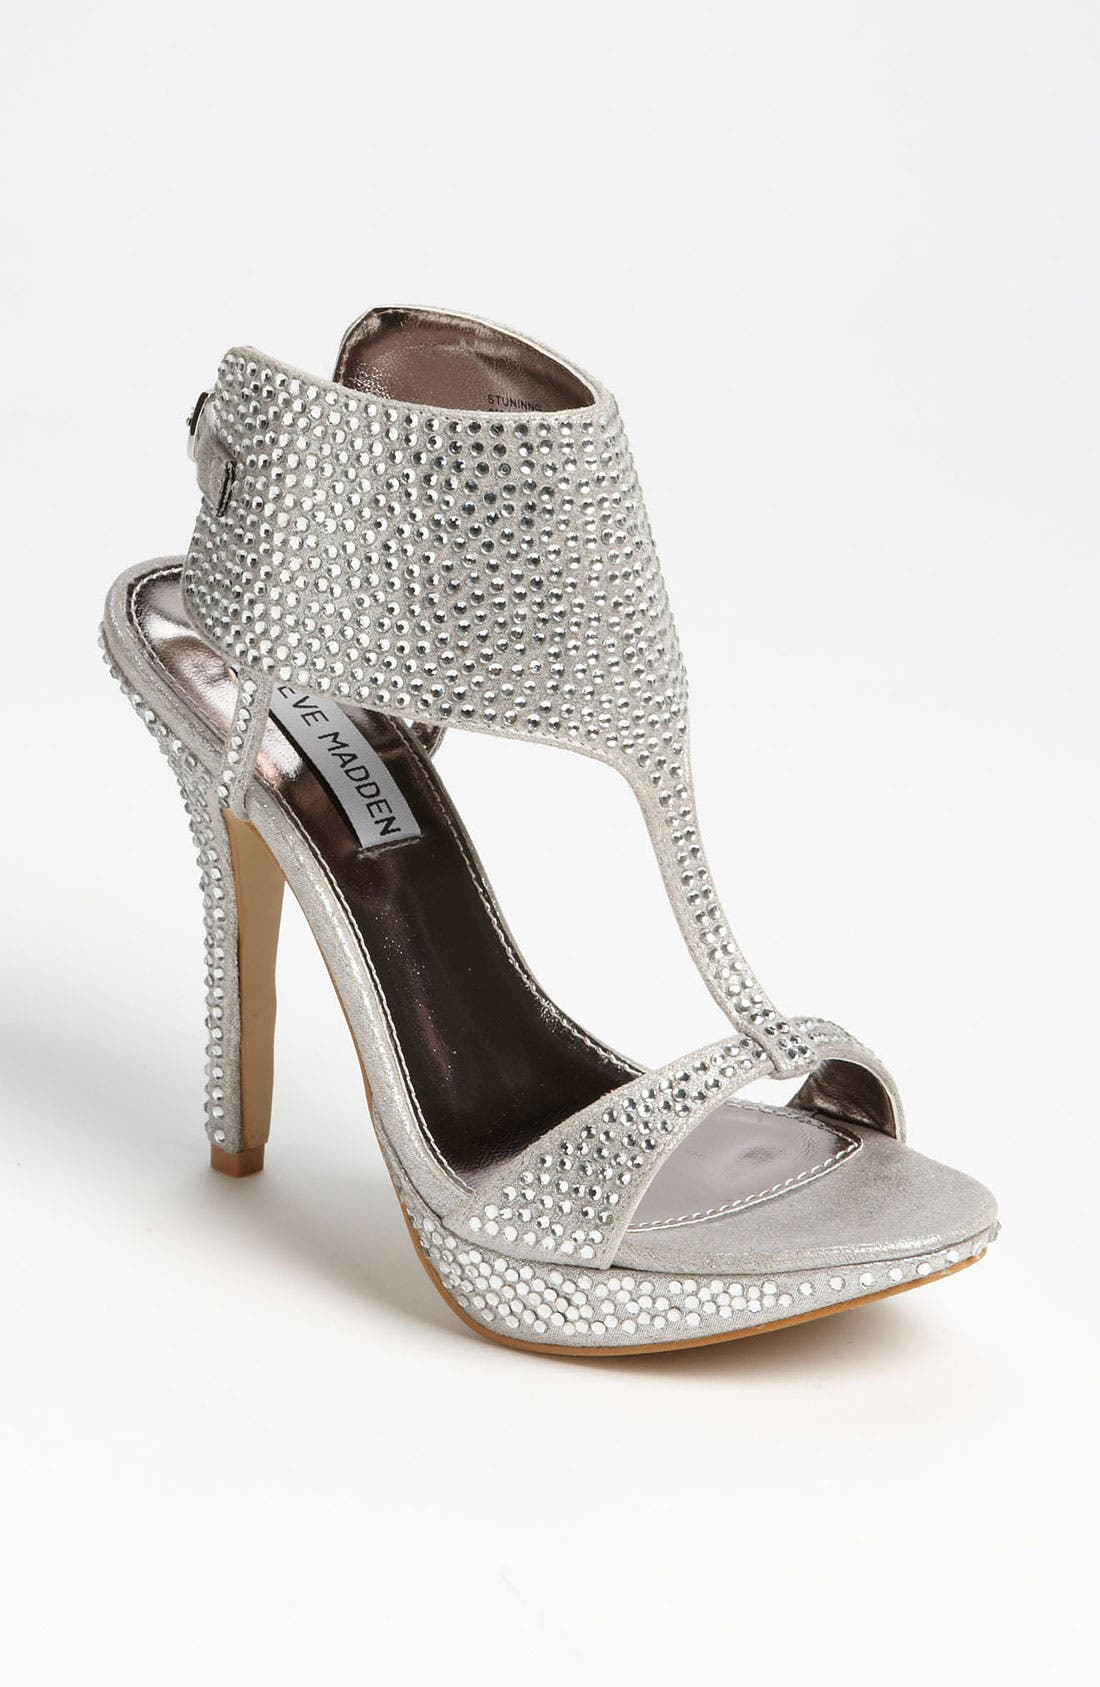 Alternate Image 1 Selected - Steve Madden 'Stuninng' Sandal